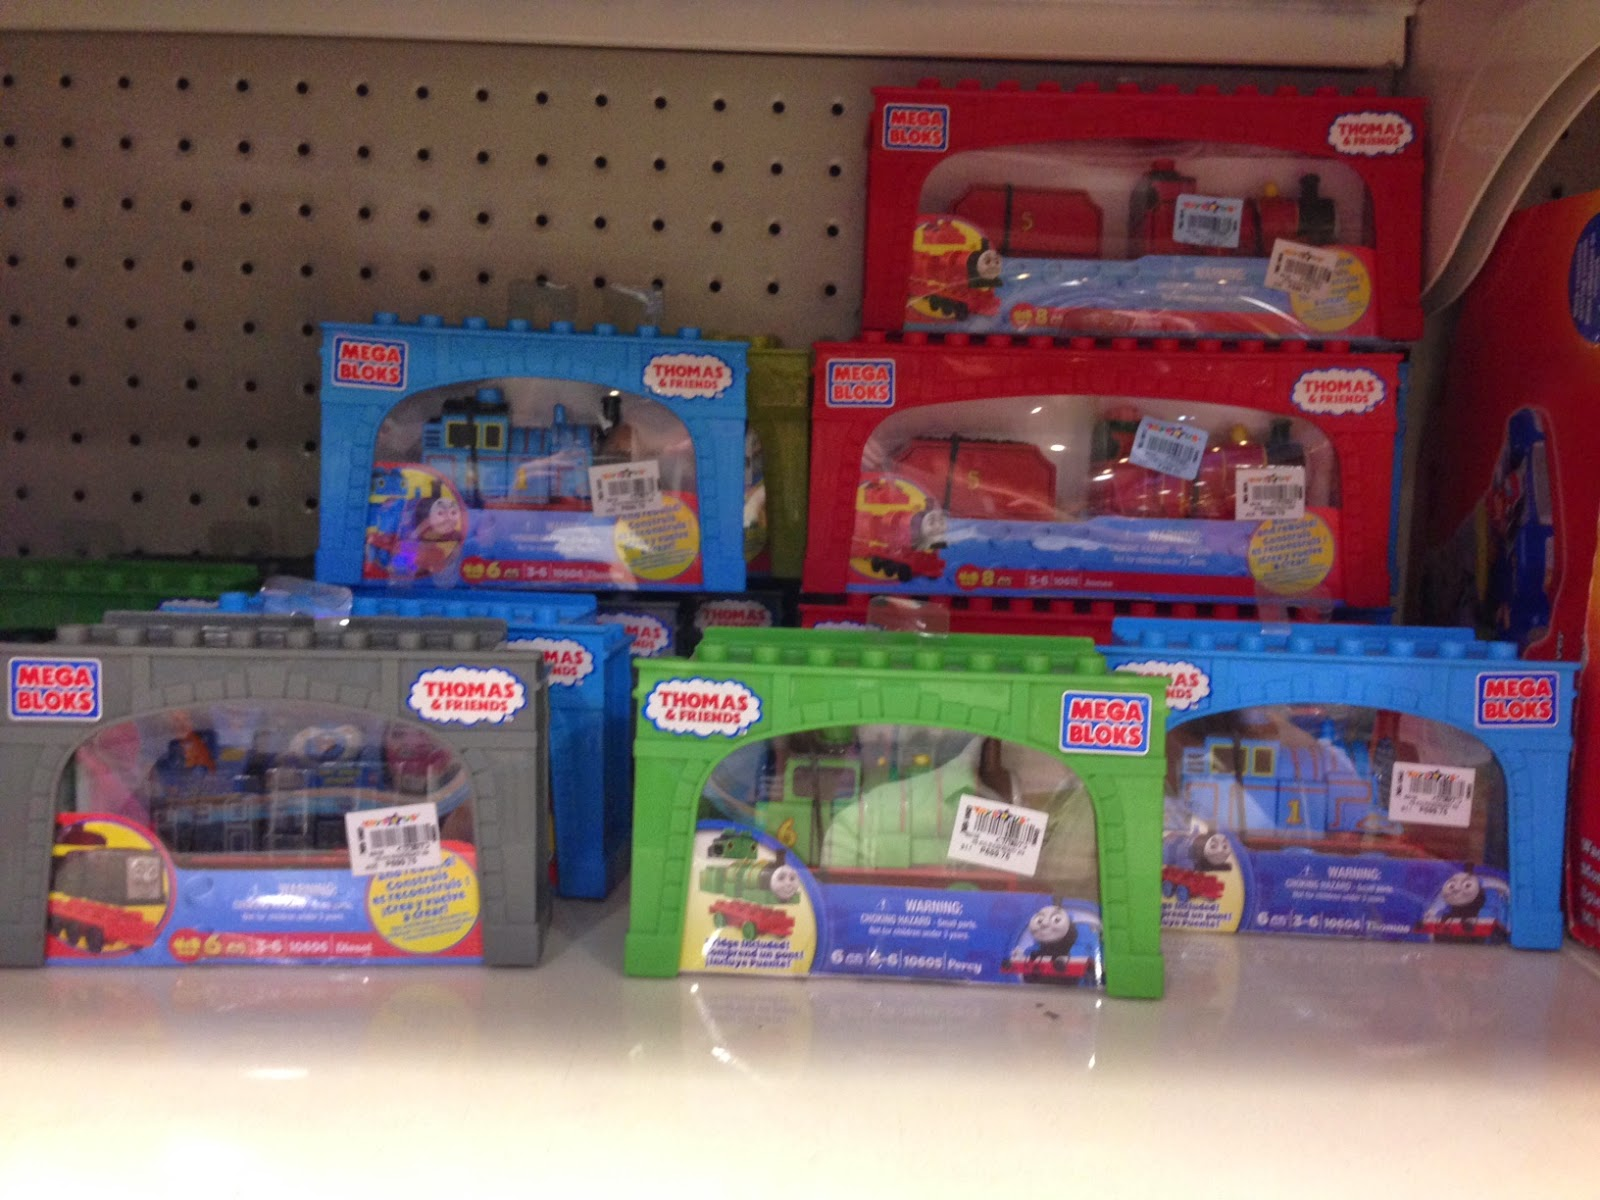 Toy SALE : Mega Bloks Thomas and Friends train characters/ engines at 50% off